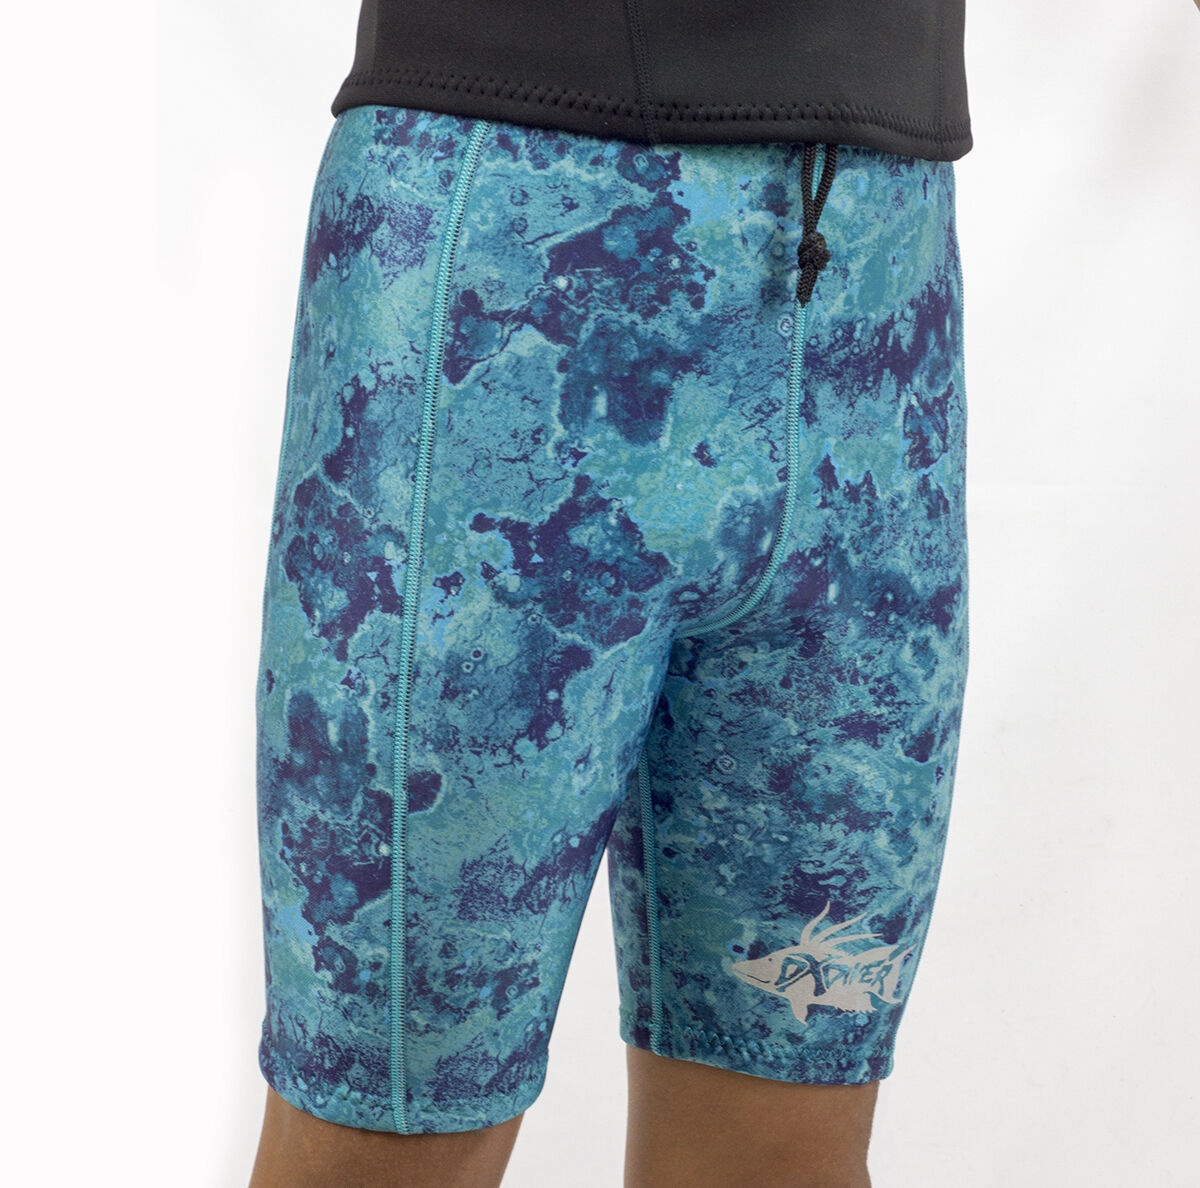 DXDIVER 2MM SHORT PANTS CAMO NEOPRENE SCUBA DIVING SPEARFISHING FREEDIVING NEW